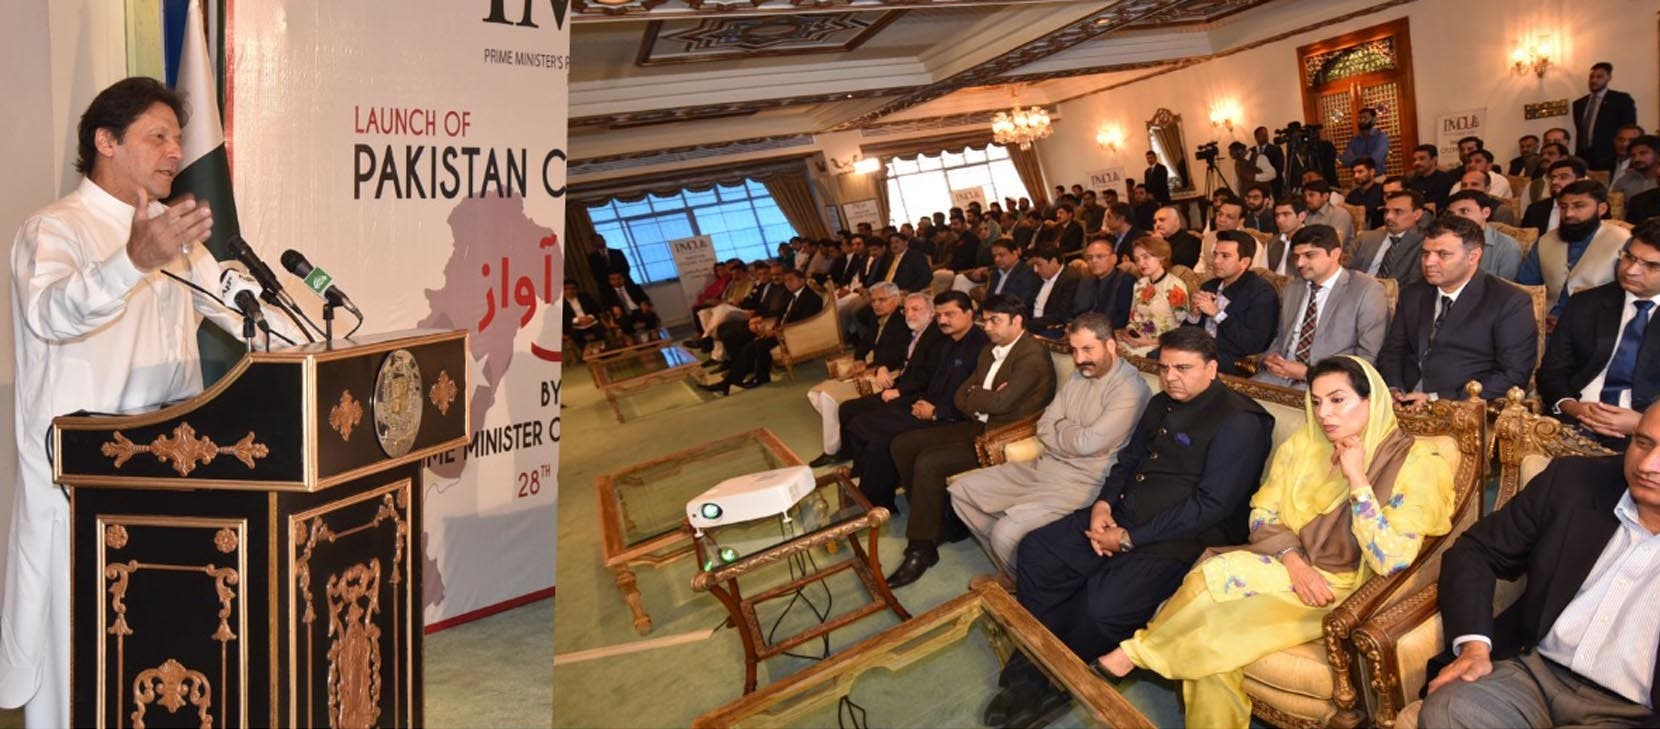 Prime Minister Imran Khan said the portal will make citizens hold the government accountable. (Supplied)